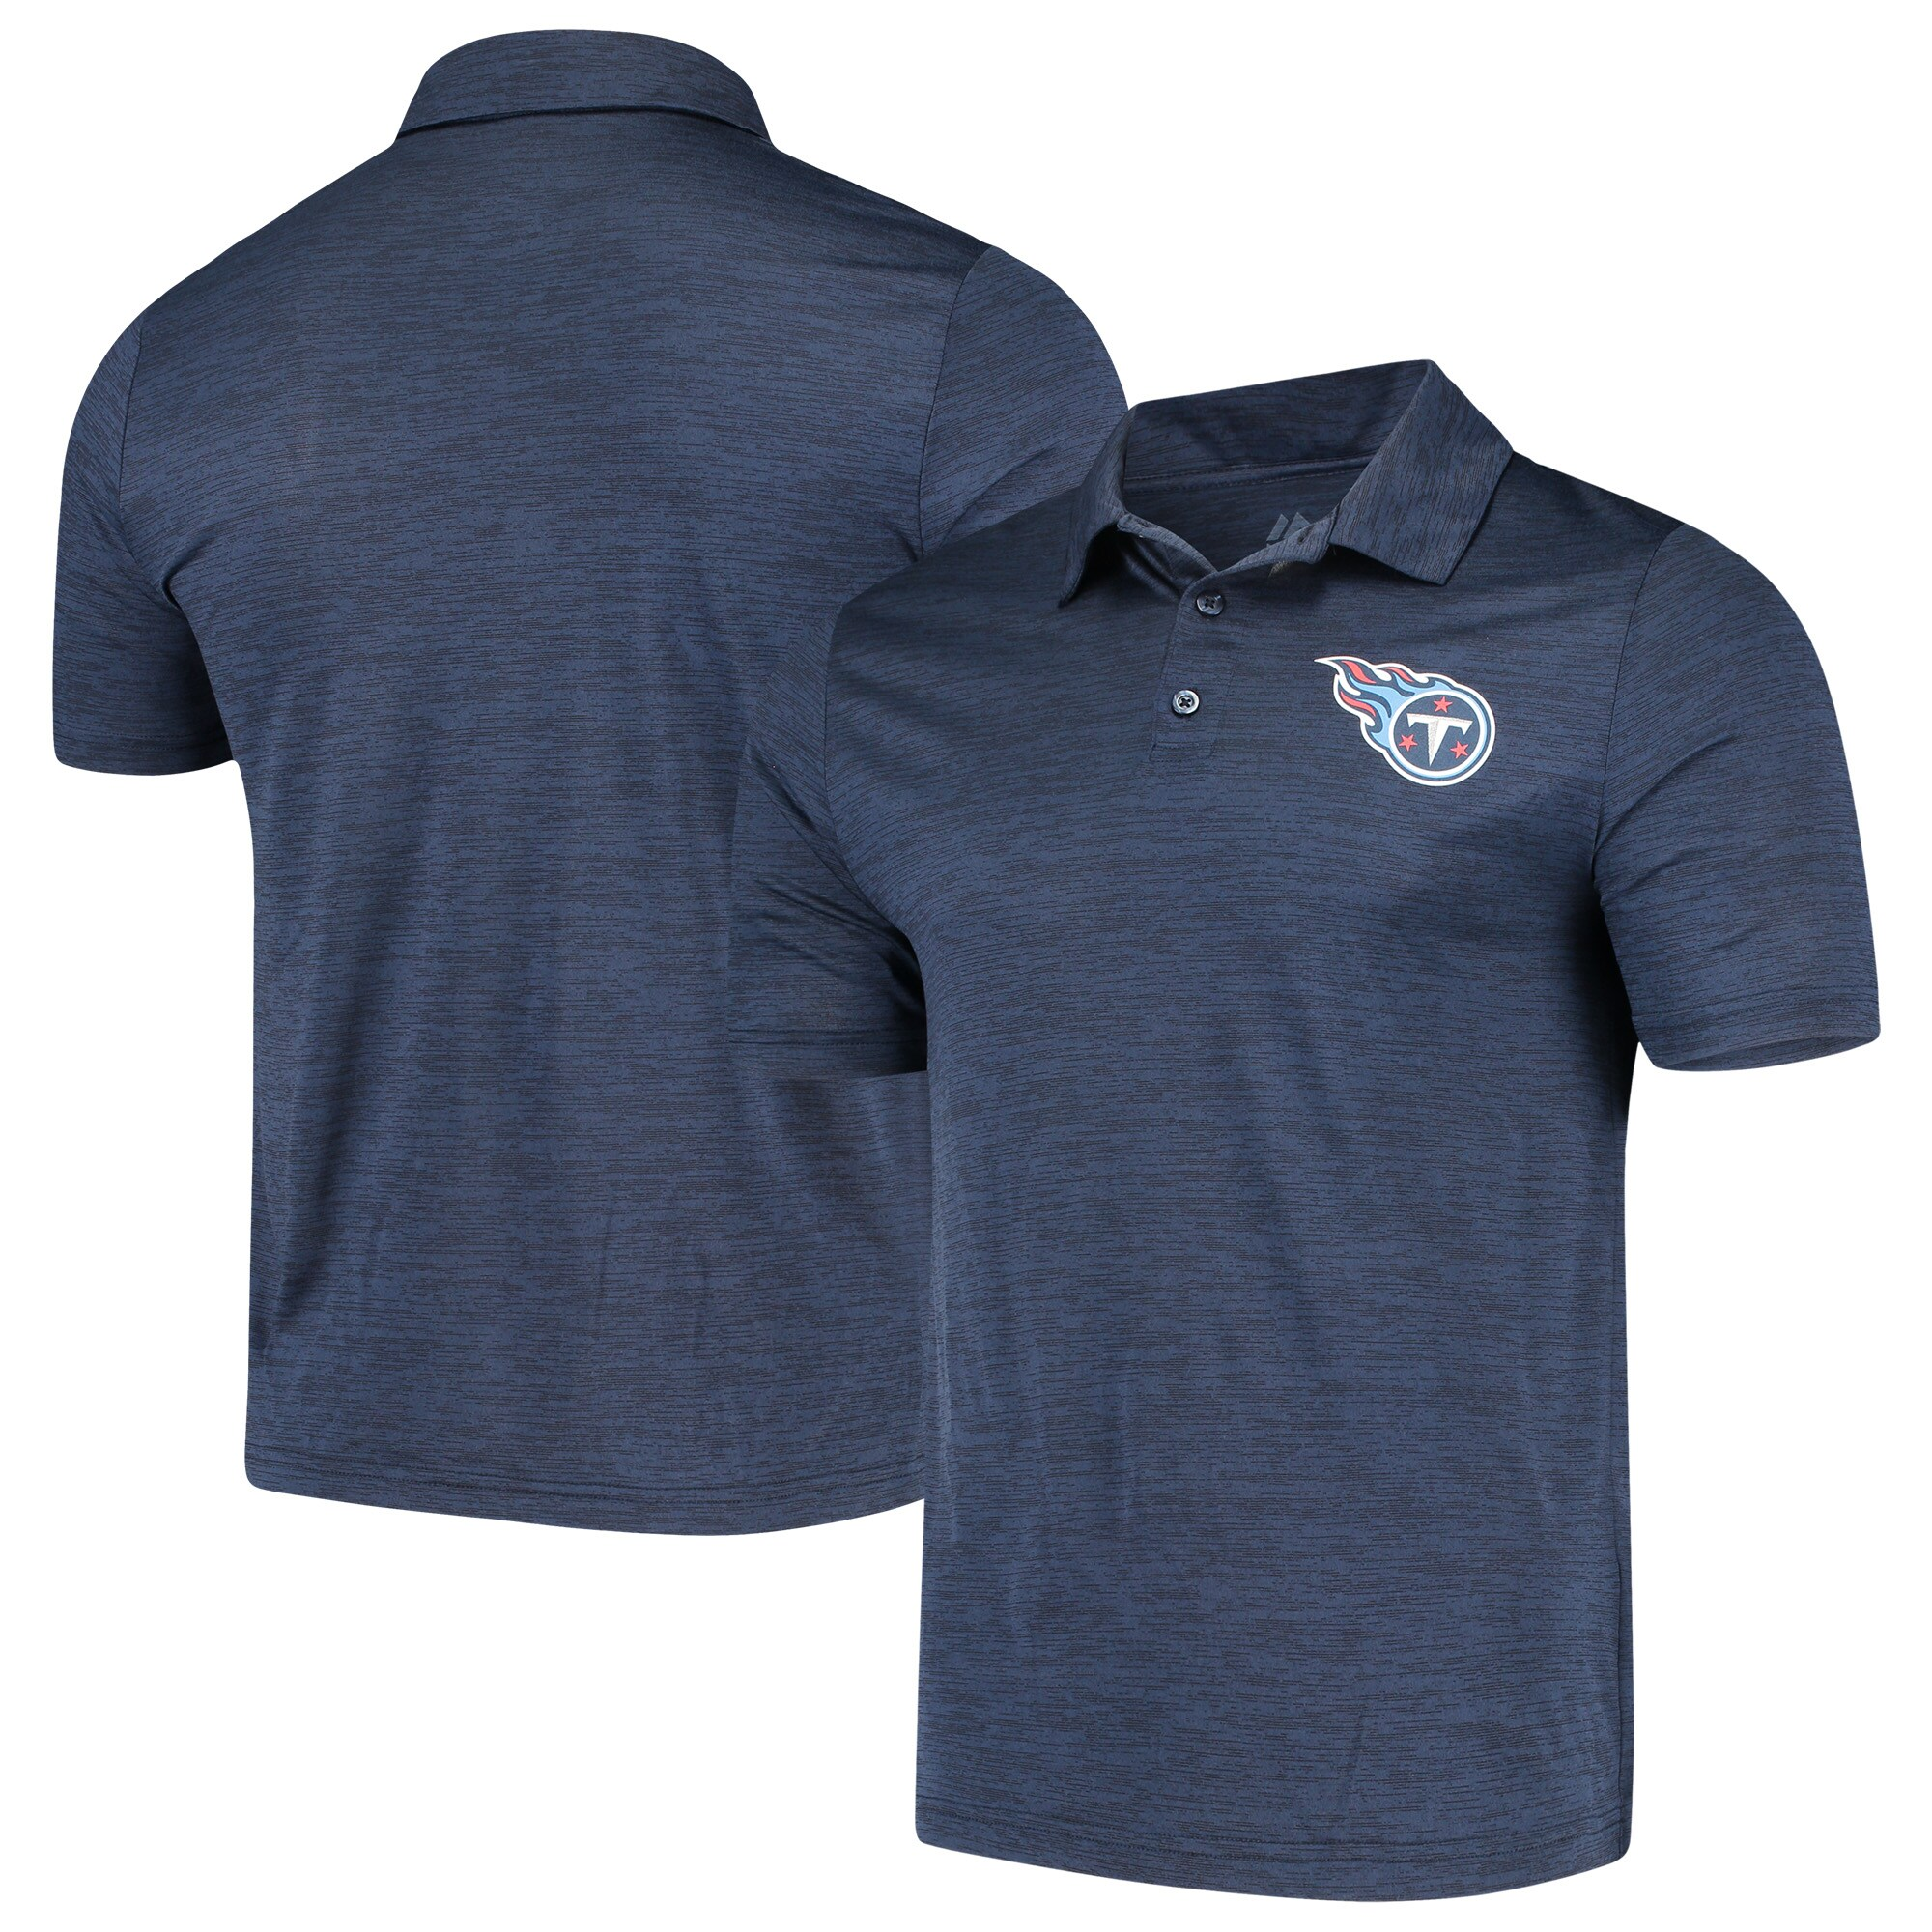 Tennessee Titans Majestic Iconic Positive Production Polo - Heathered Navy